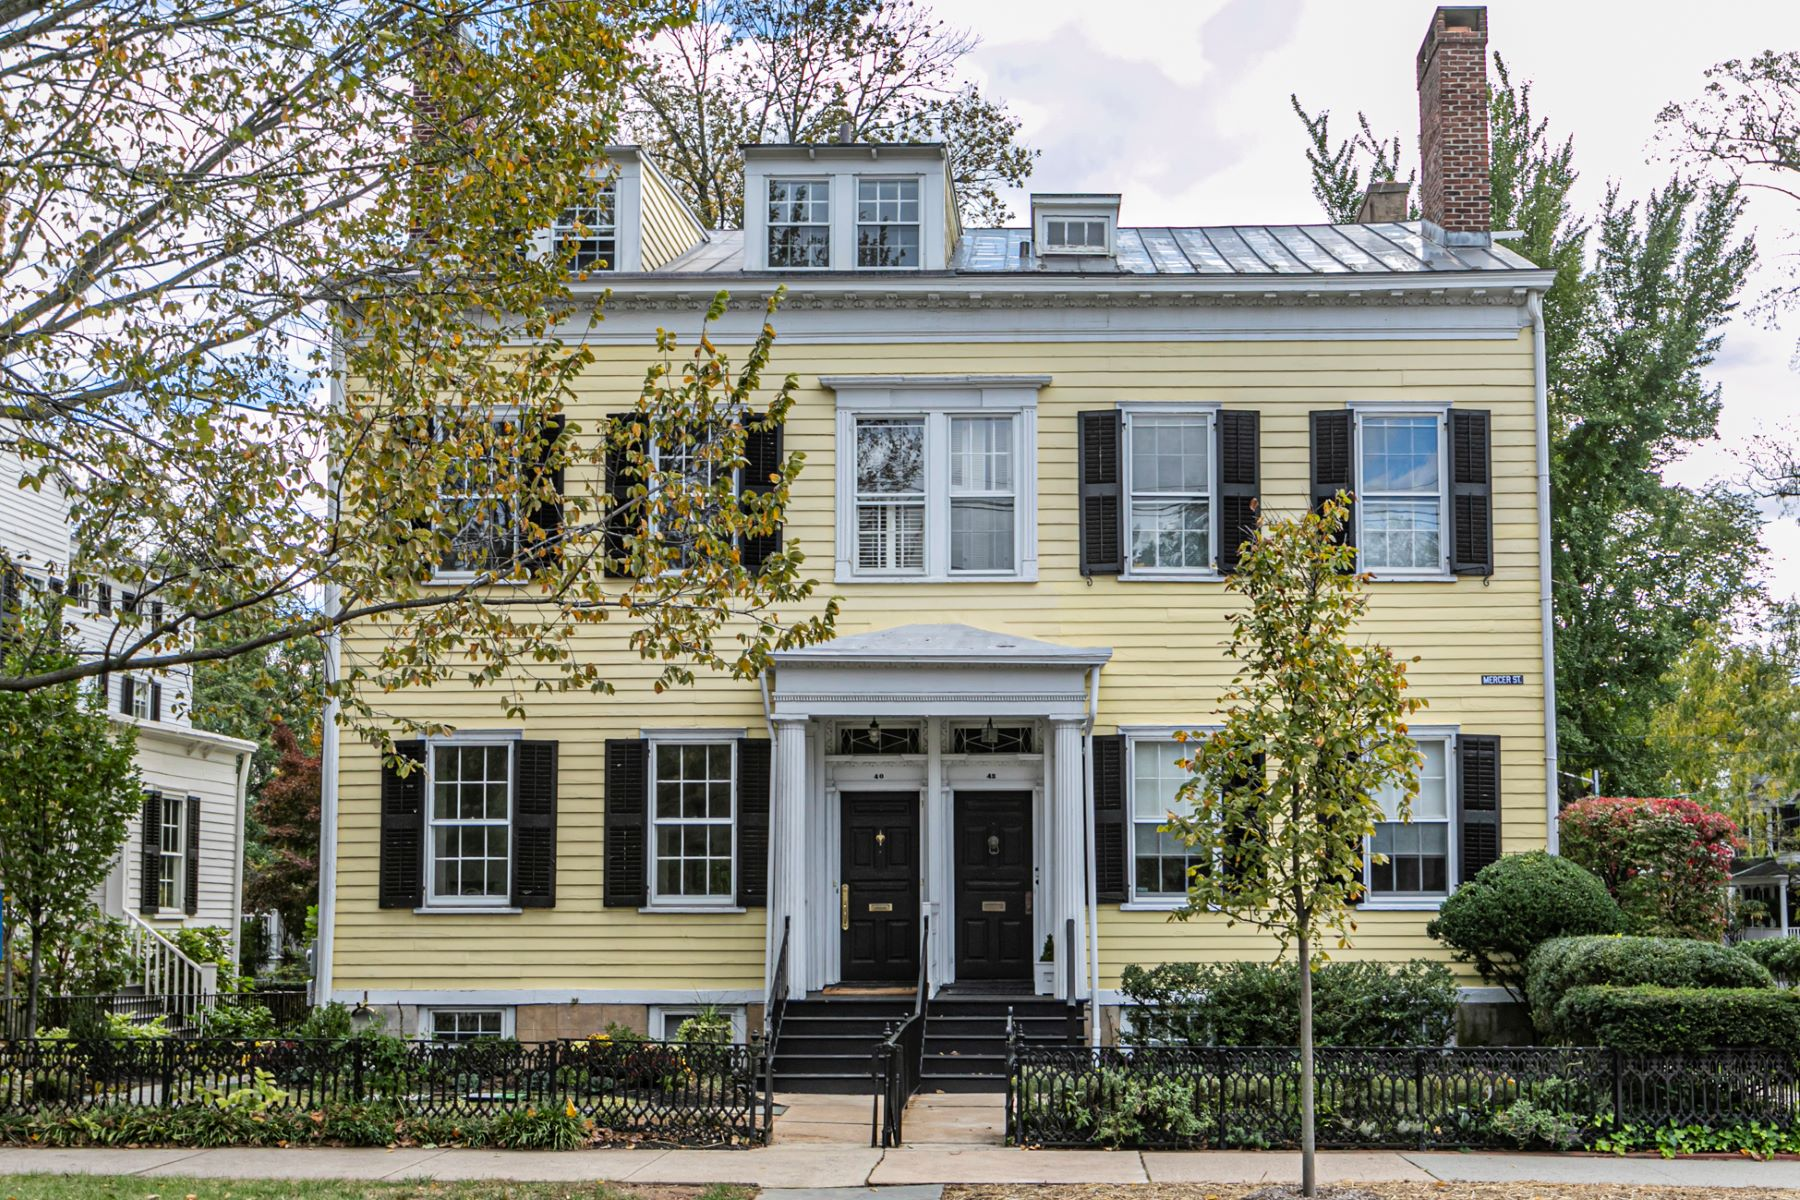 Duplex Homes للـ Sale في Newly Renovated 1825 Gem, Right in Town 40 Mercer Street, Princeton, New Jersey 08540 United States